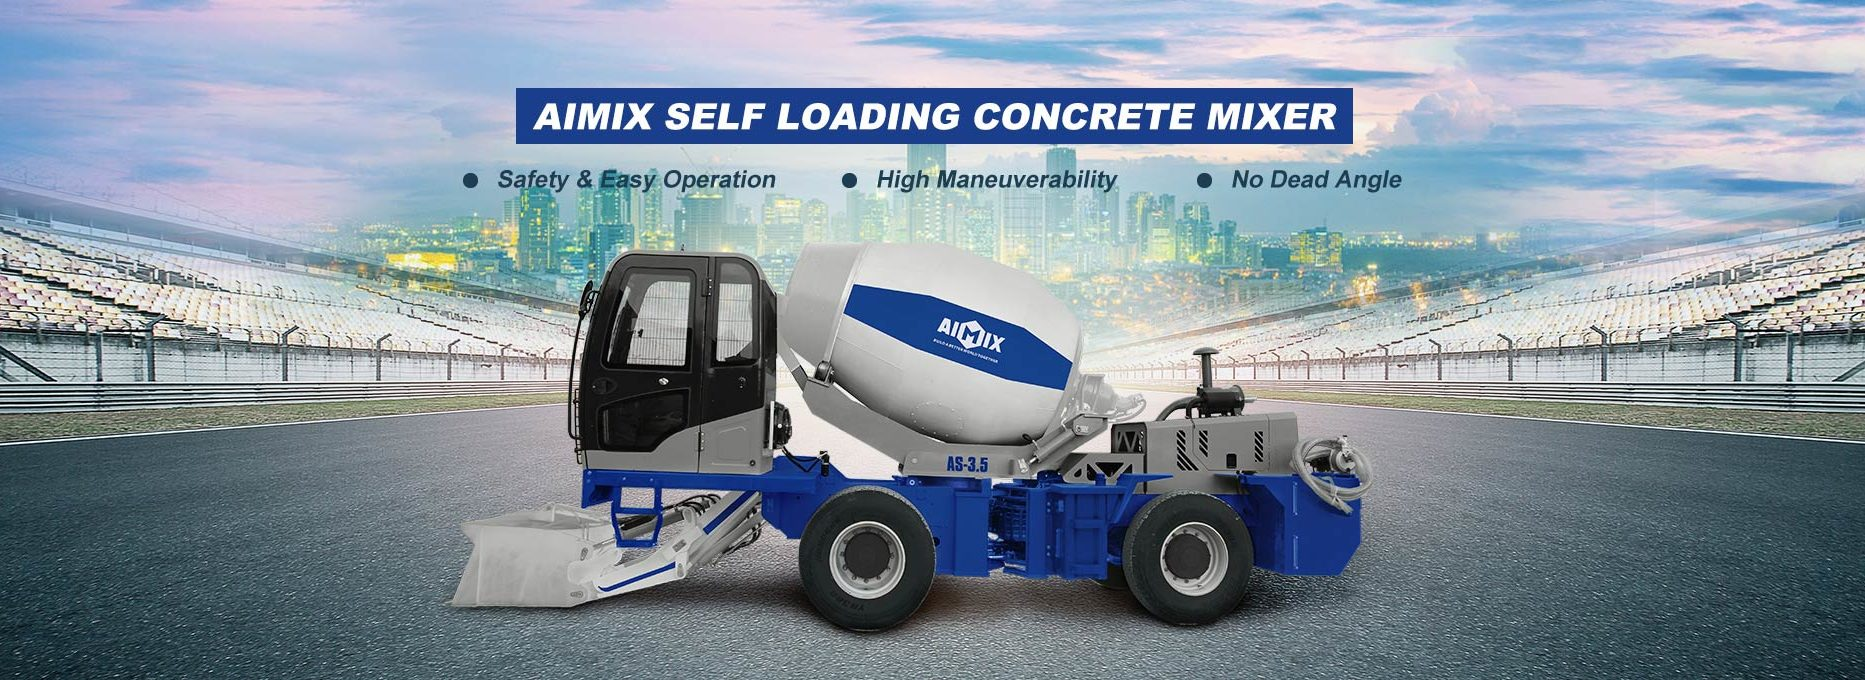 Aimix Self Loading Concrete Mixer For Sale